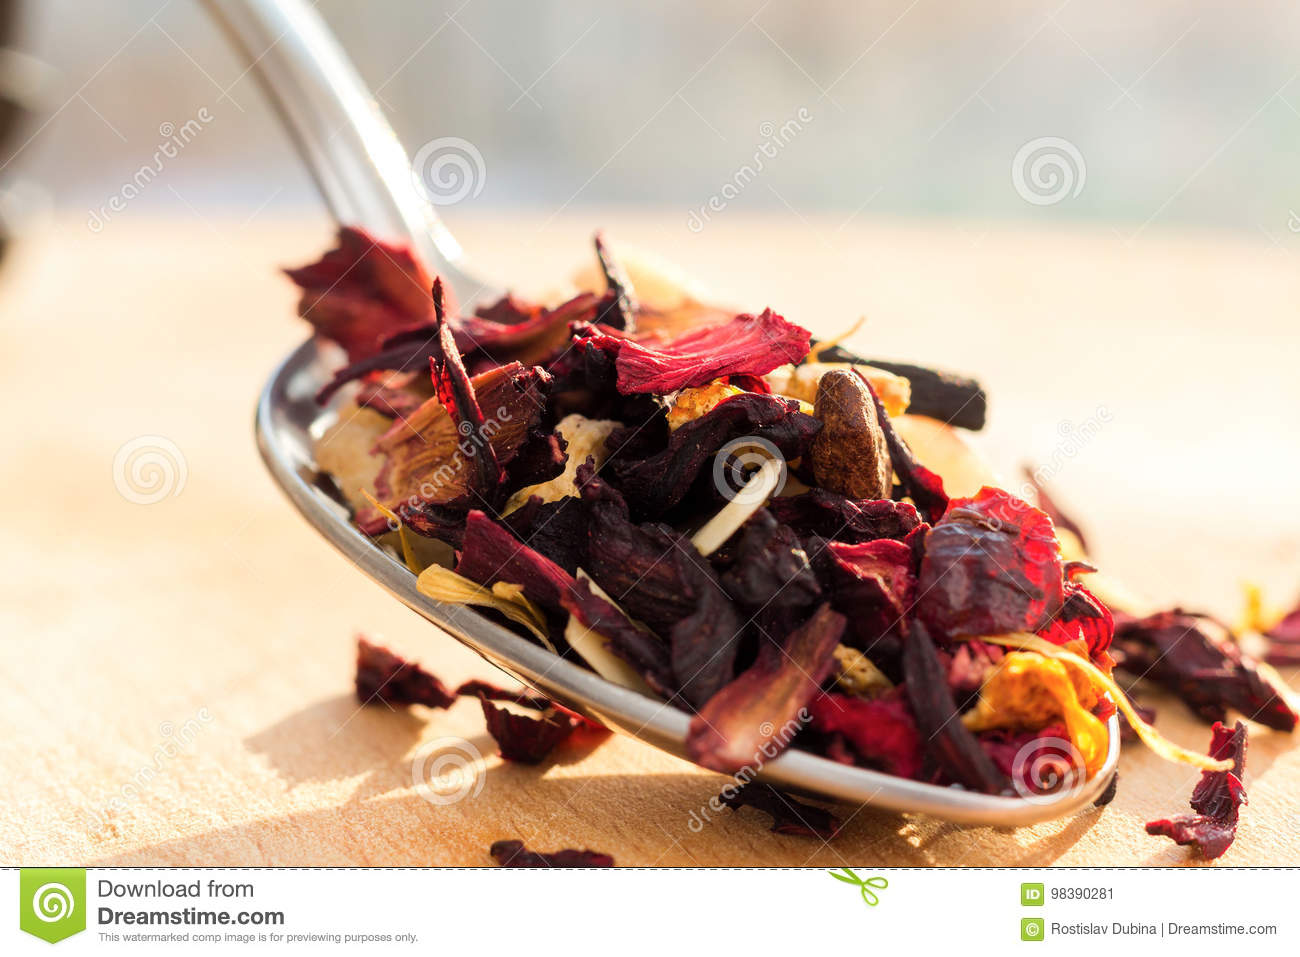 Pile of fruit tea with petals and dry fruit e composition of the pile of fruit tea with petals and dry fruit e composition of the heap of tea leaves and dried hibiscus flower izmirmasajfo Images